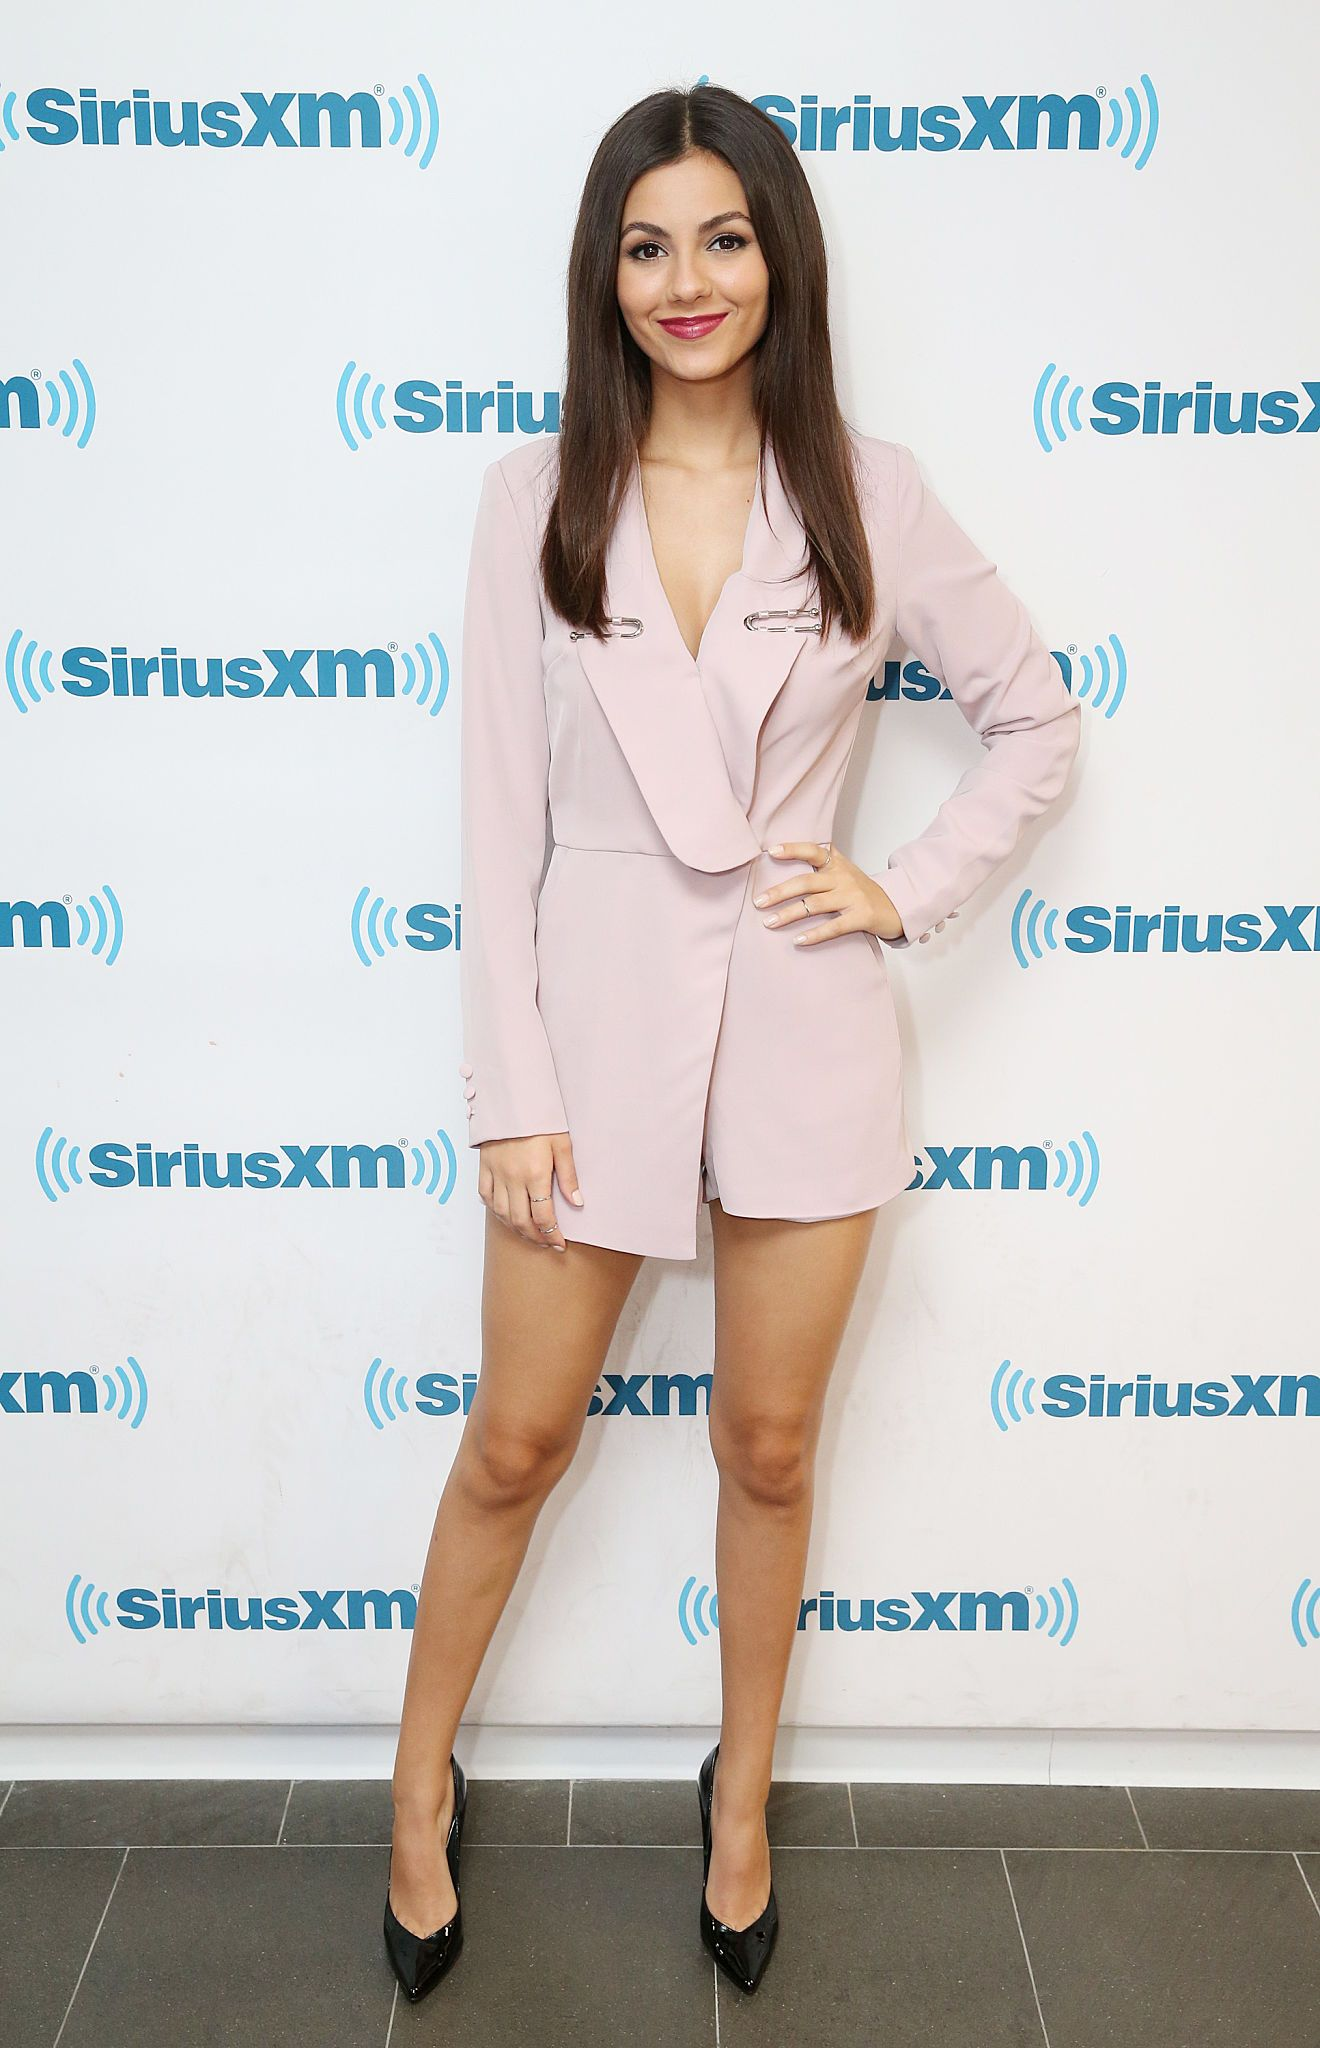 Victoria Justice - Visits SiriusXM Studio - NYC - October 19, 2016